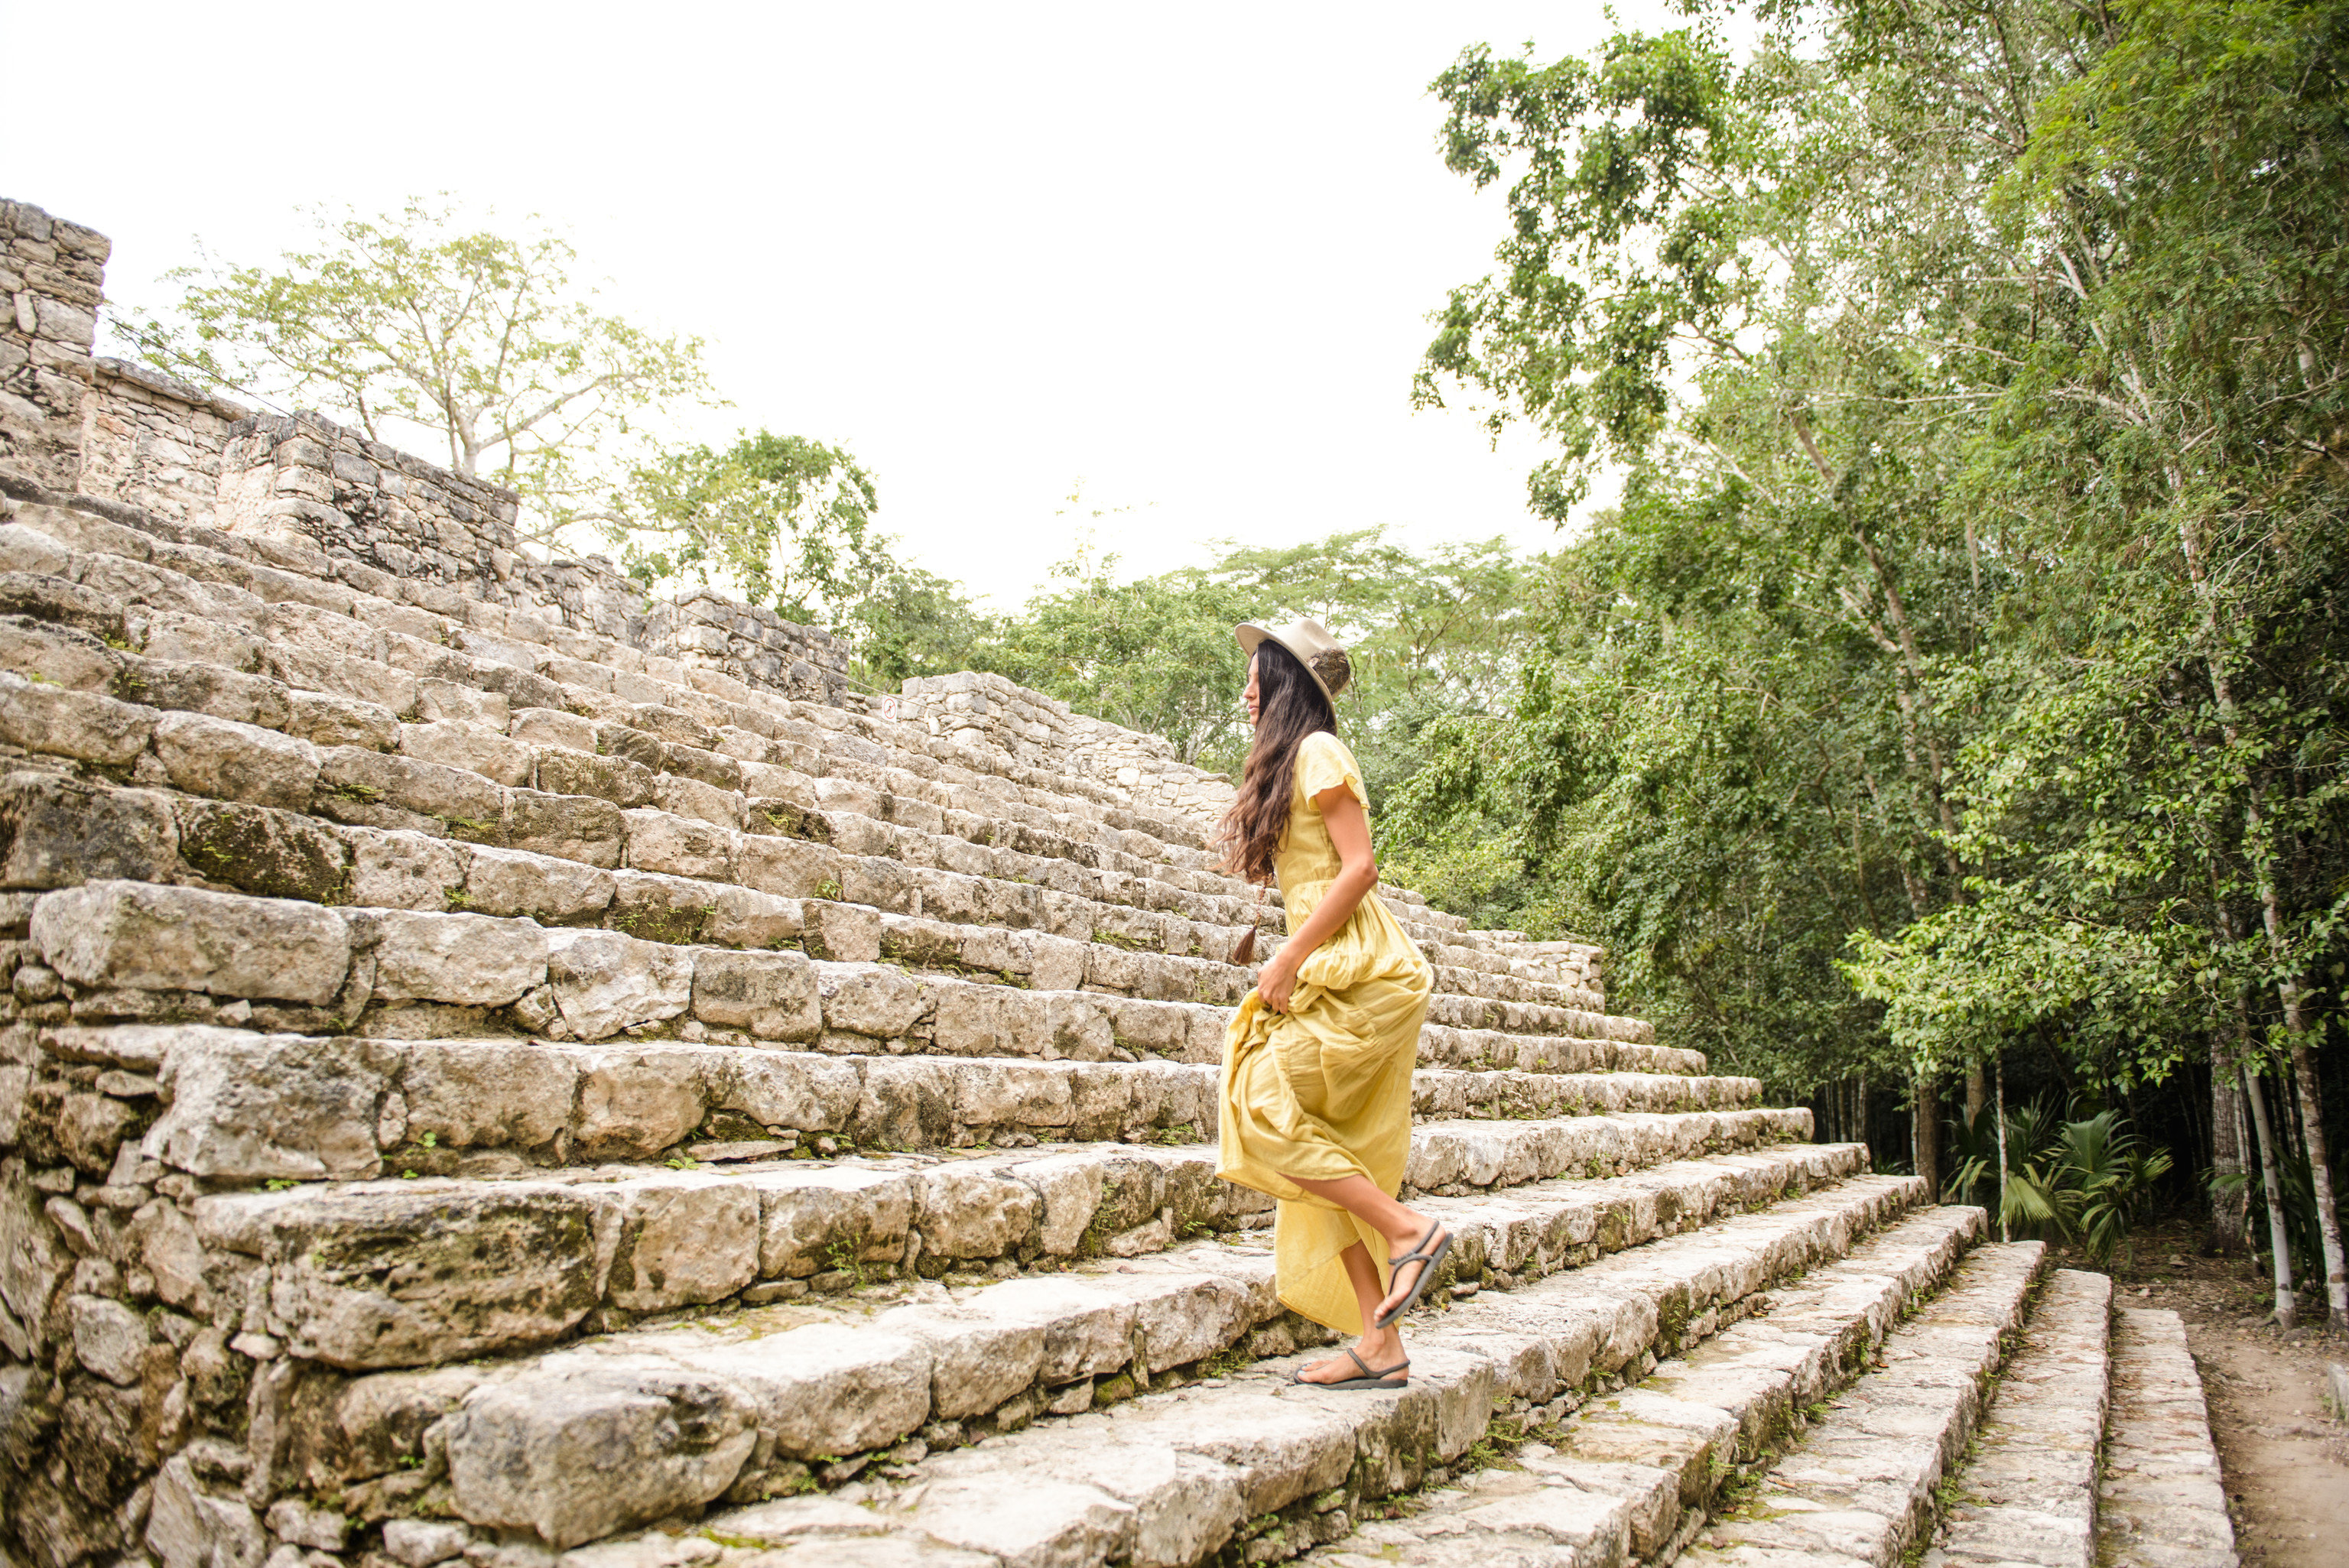 City Mexico Trip Ideas Tulum outdoor tree rock temple outdoor structure girl tourism sky grass leisure archaeological site recreation stone